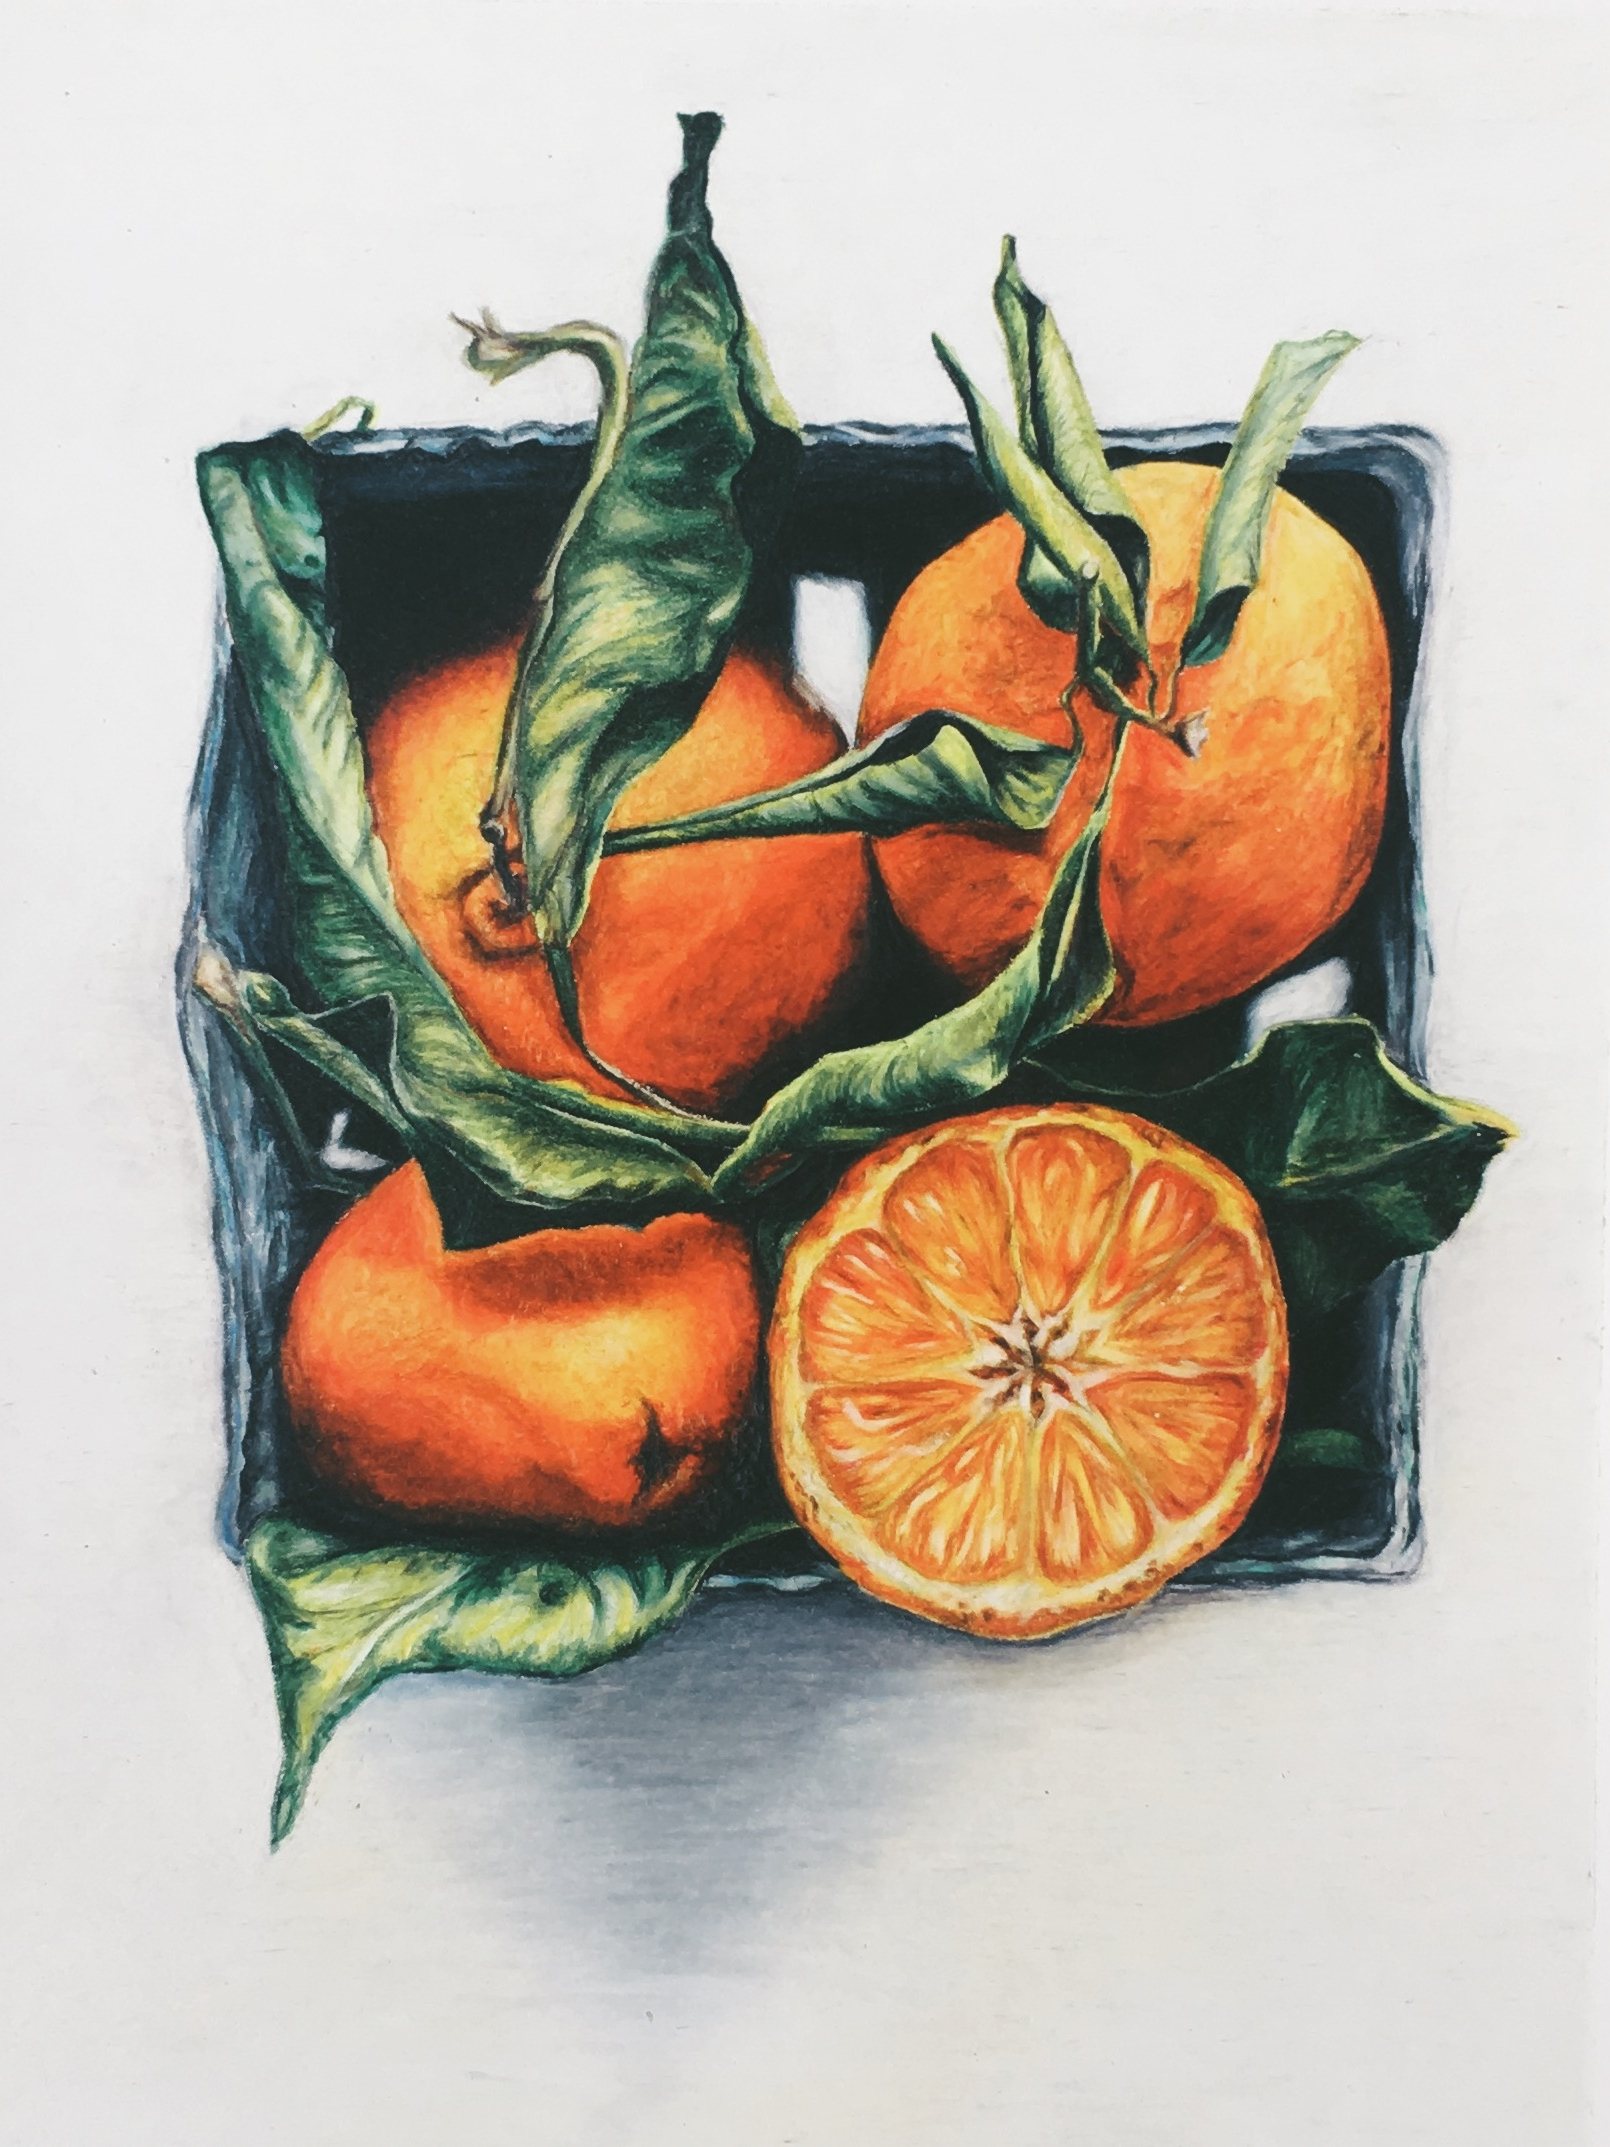 """Las Primeras Naranjas - Detailed and vibrant, this still life is full of richness and depth. As the first piece created in the Camino Oscuro collection, it is the only one with a white background. I had not originally intended to include this piece as part of the collection, as it lacks the characteristic dark background; however, upon reflection, I realized that the white background is precisely why it must be included. This piece represents the starting point of the journey I experienced while creating this collection, a collection that would not exist without """"Las Primeras Naranjas."""""""